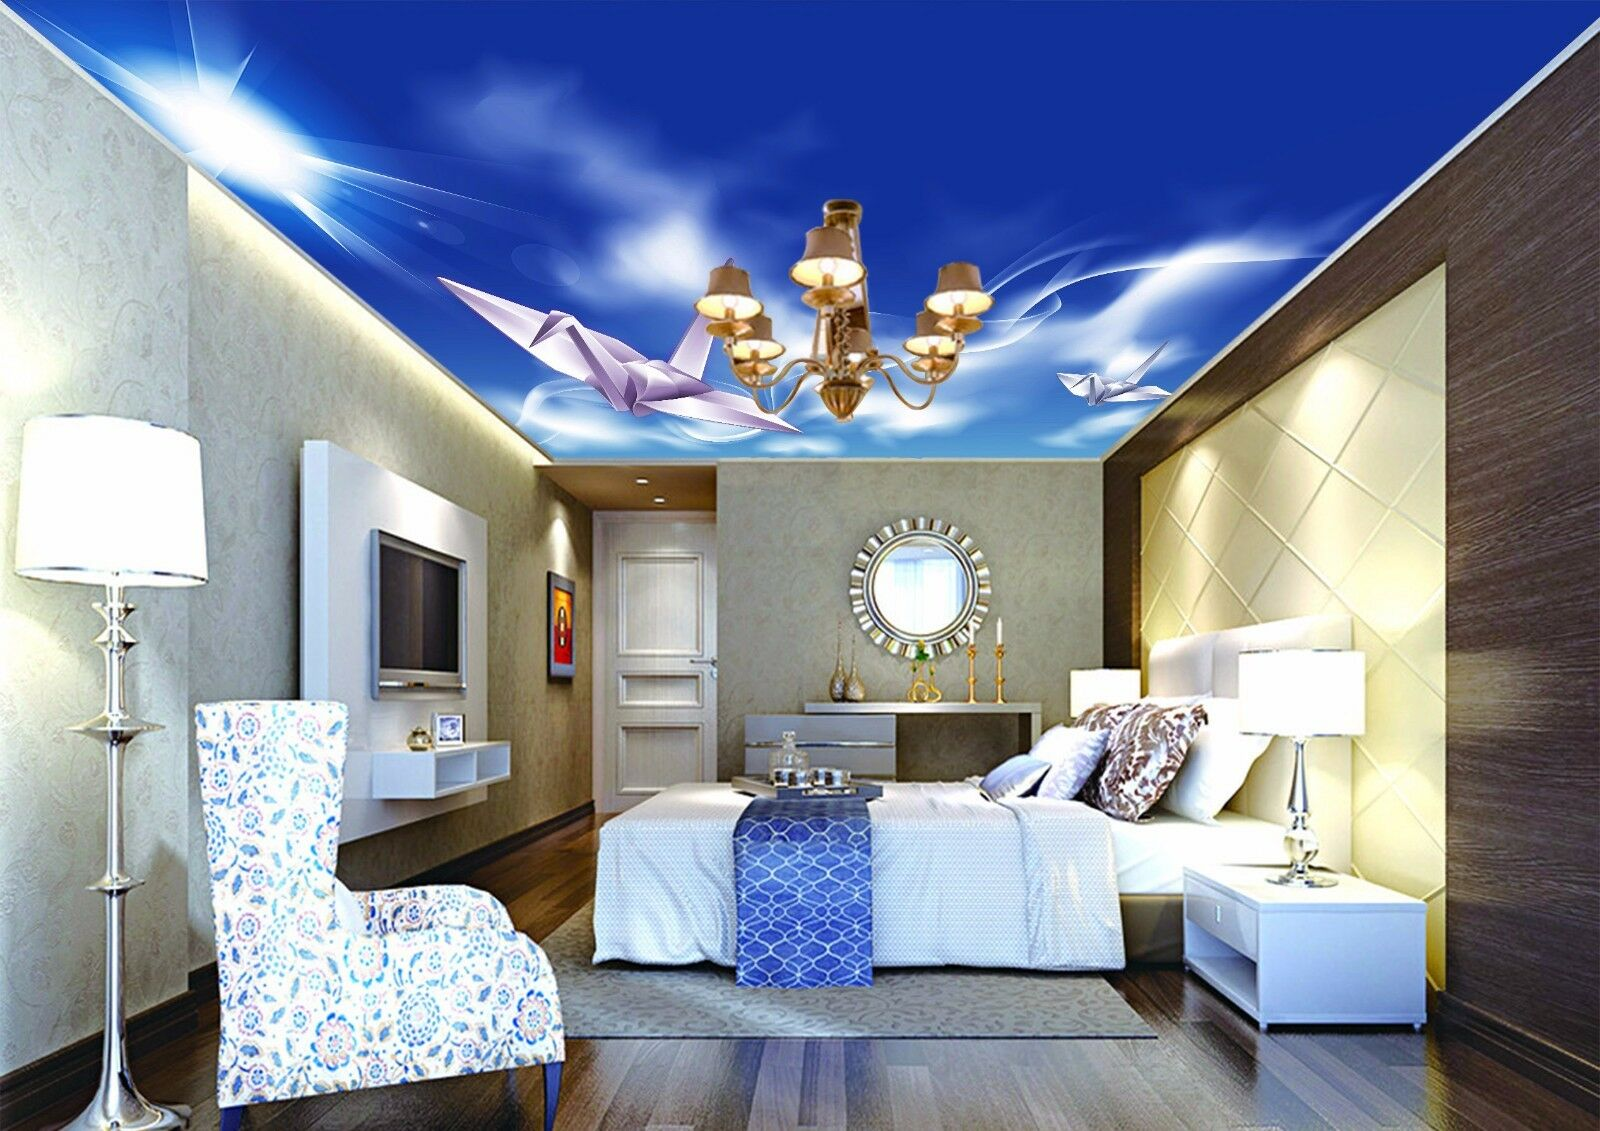 3D  Paper Bird 74 Ceiling WallPaper Murals Wall Print Decal Deco AJ WALLPAPER GB